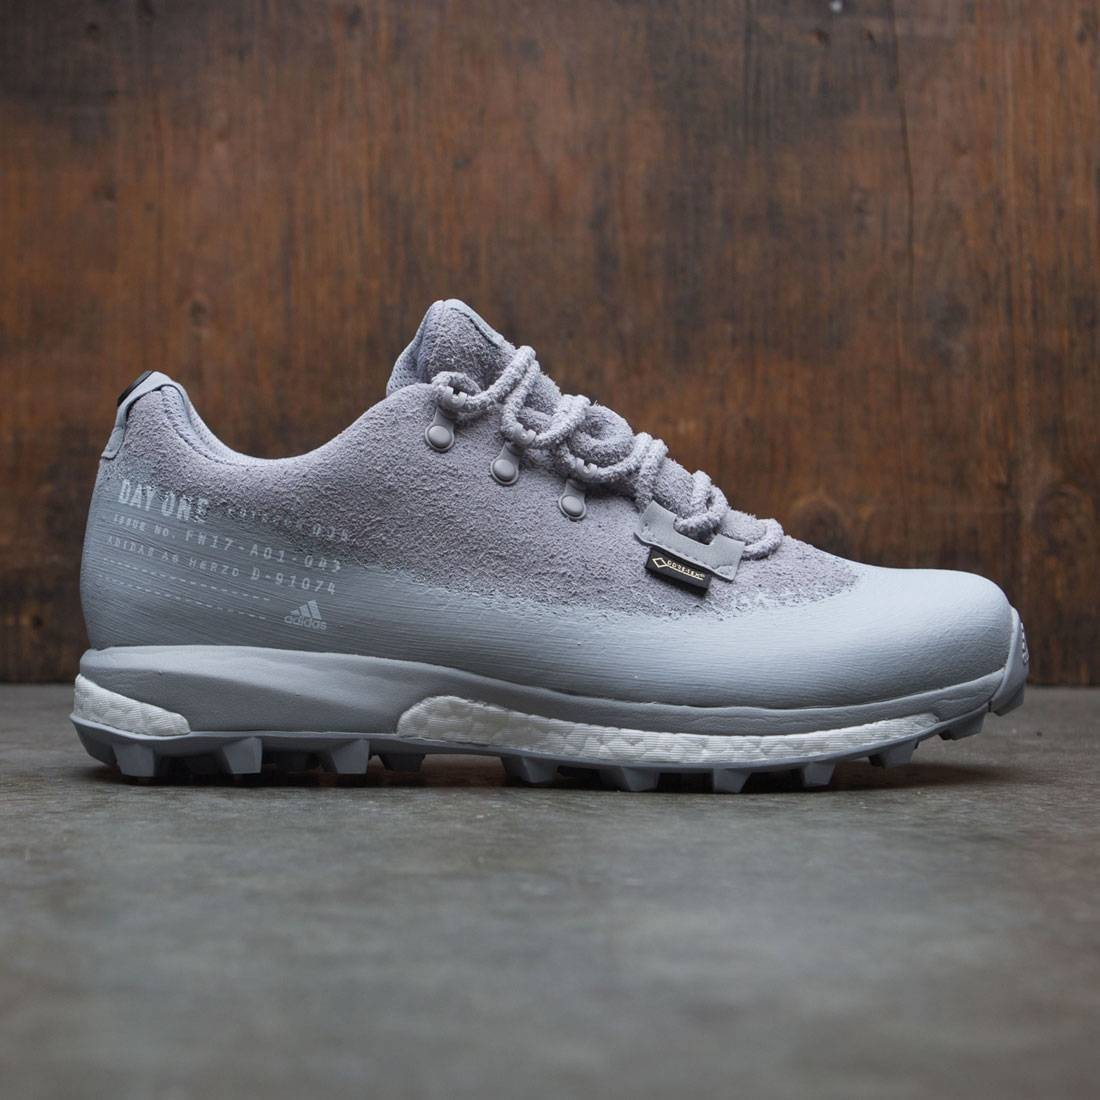 info for d4d53 09a7f Adidas Day One Men Terrex Agravic (gray  light onix  white